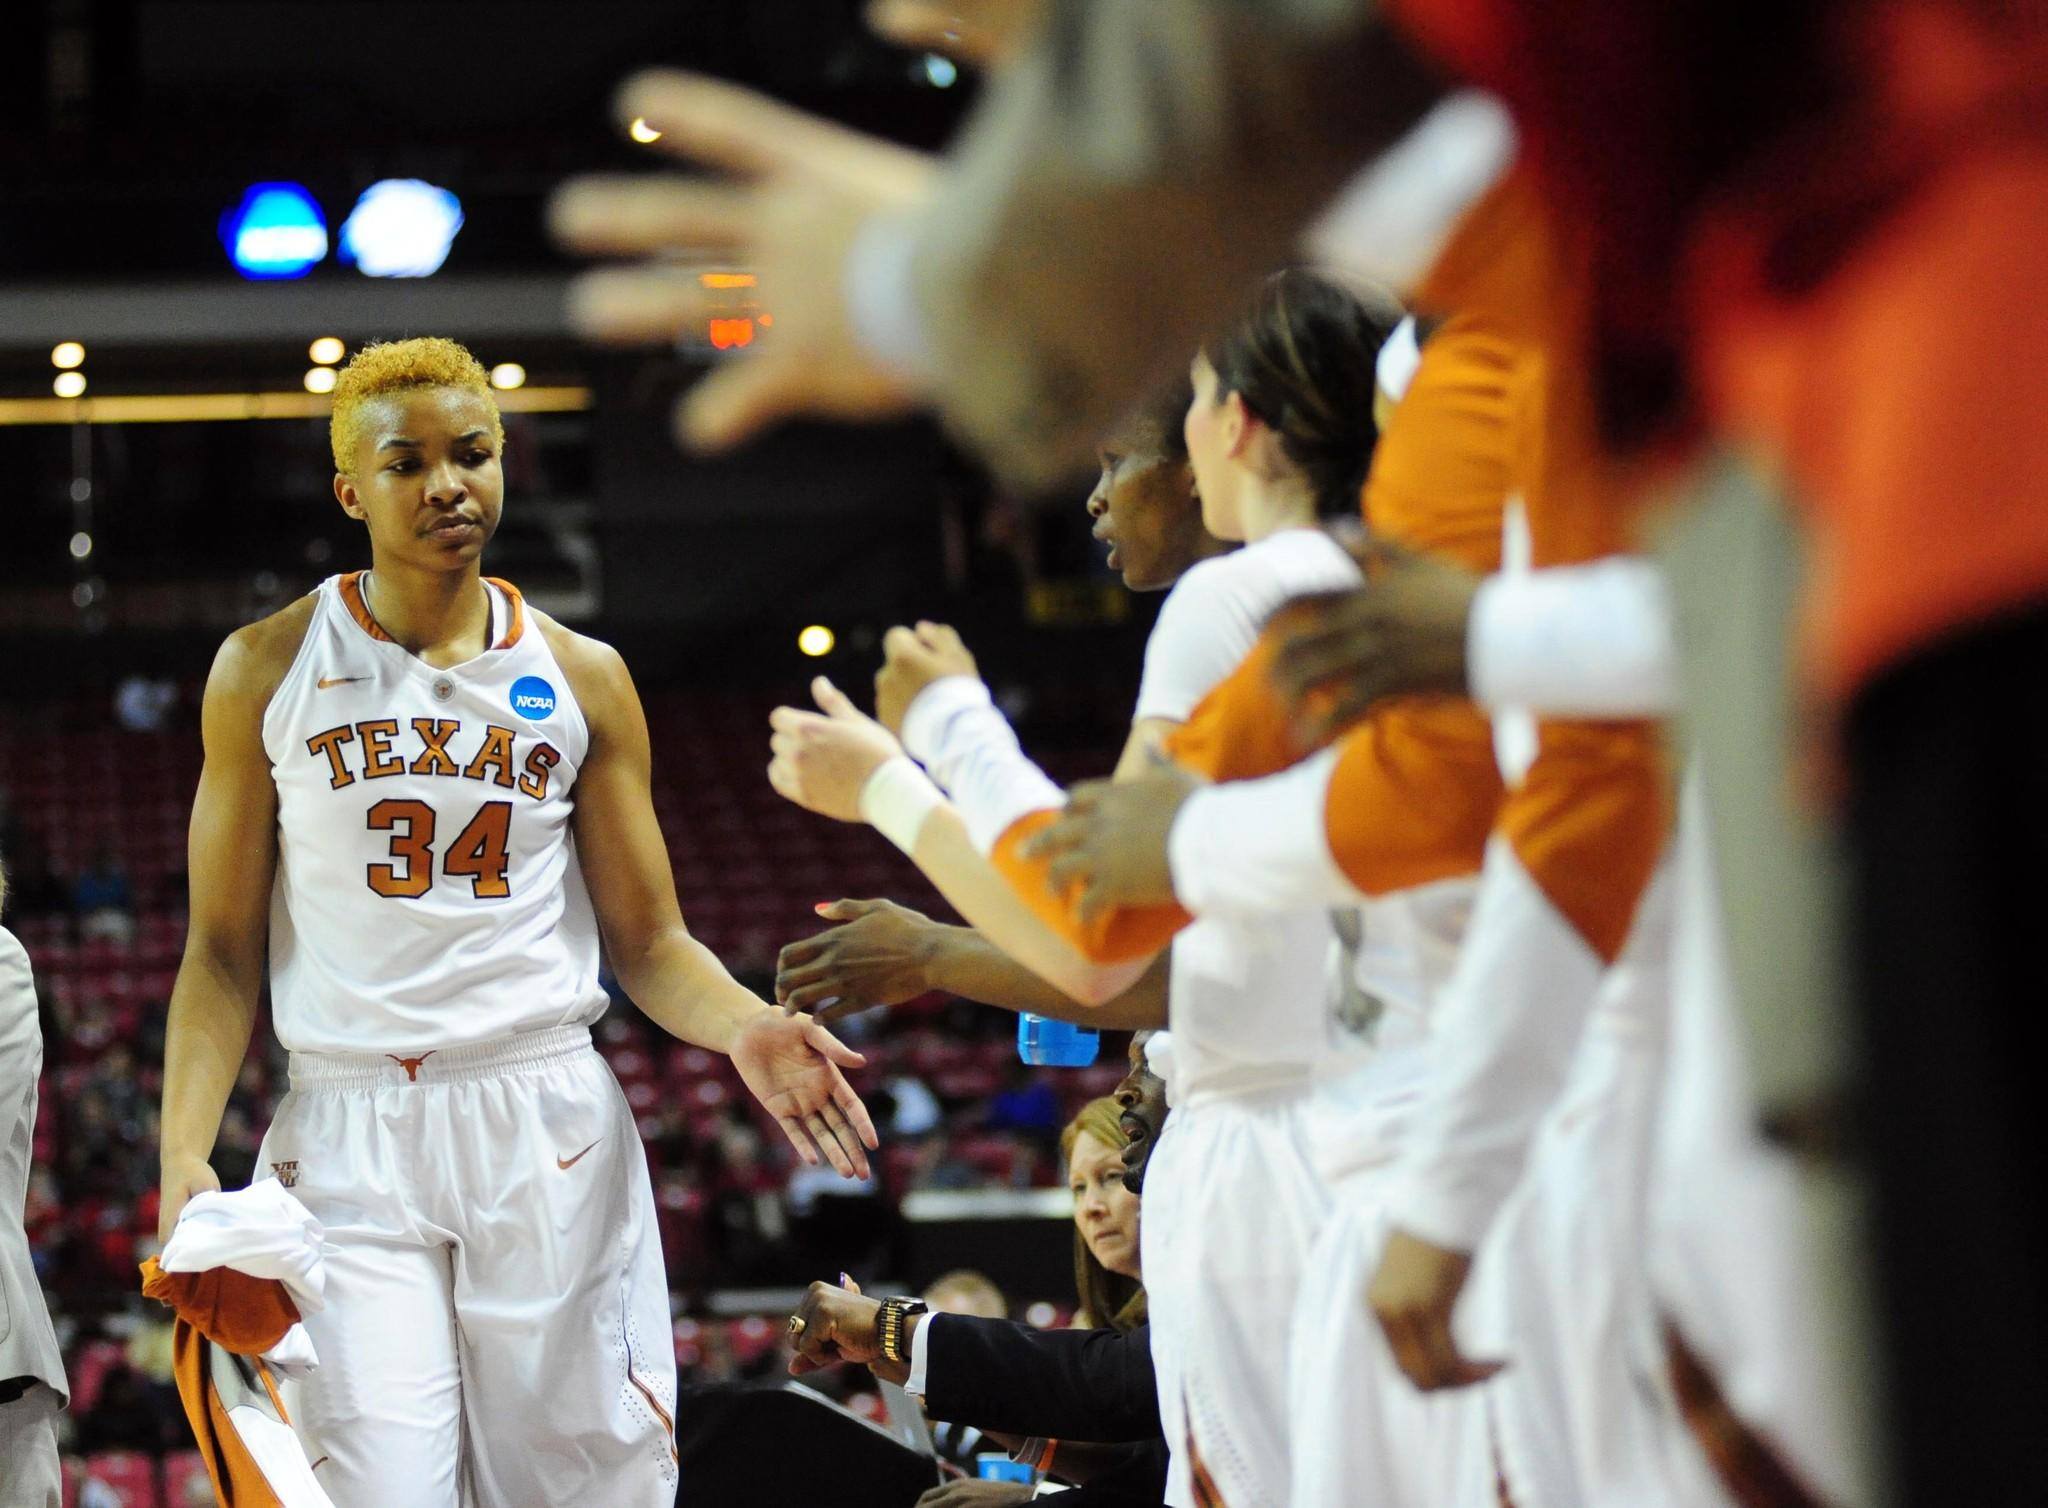 Imani McGee-Stafford high fives teammates after coming out in the first half of Texas' NCAA tournament win over Penn on Sunday at Comcast Center.